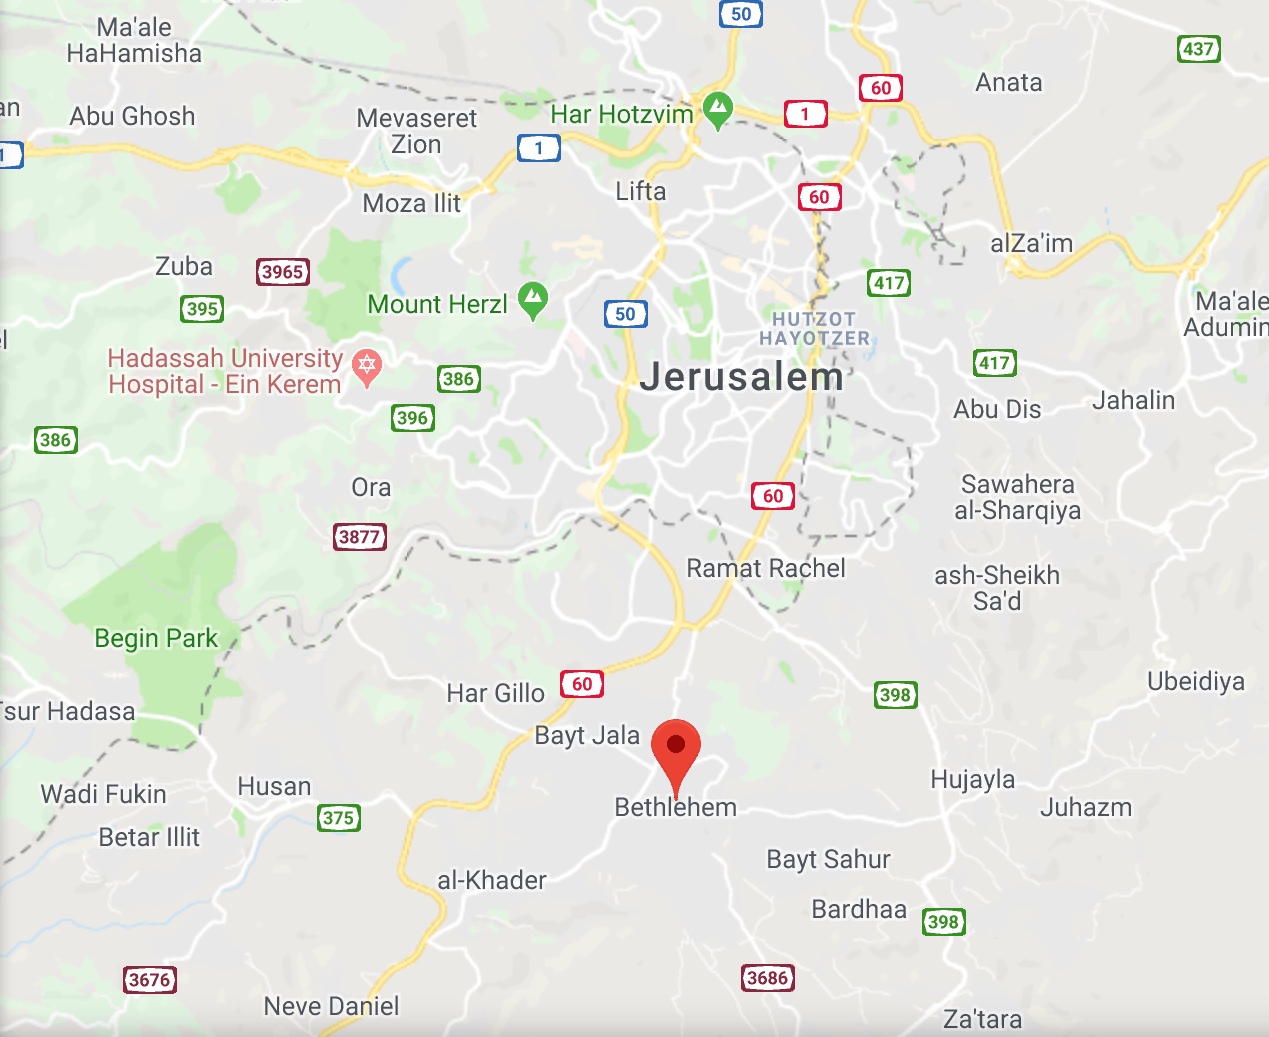 Google Map of Jerusalem and surrounding area, including Bethlehem, a 30 minute drive South.